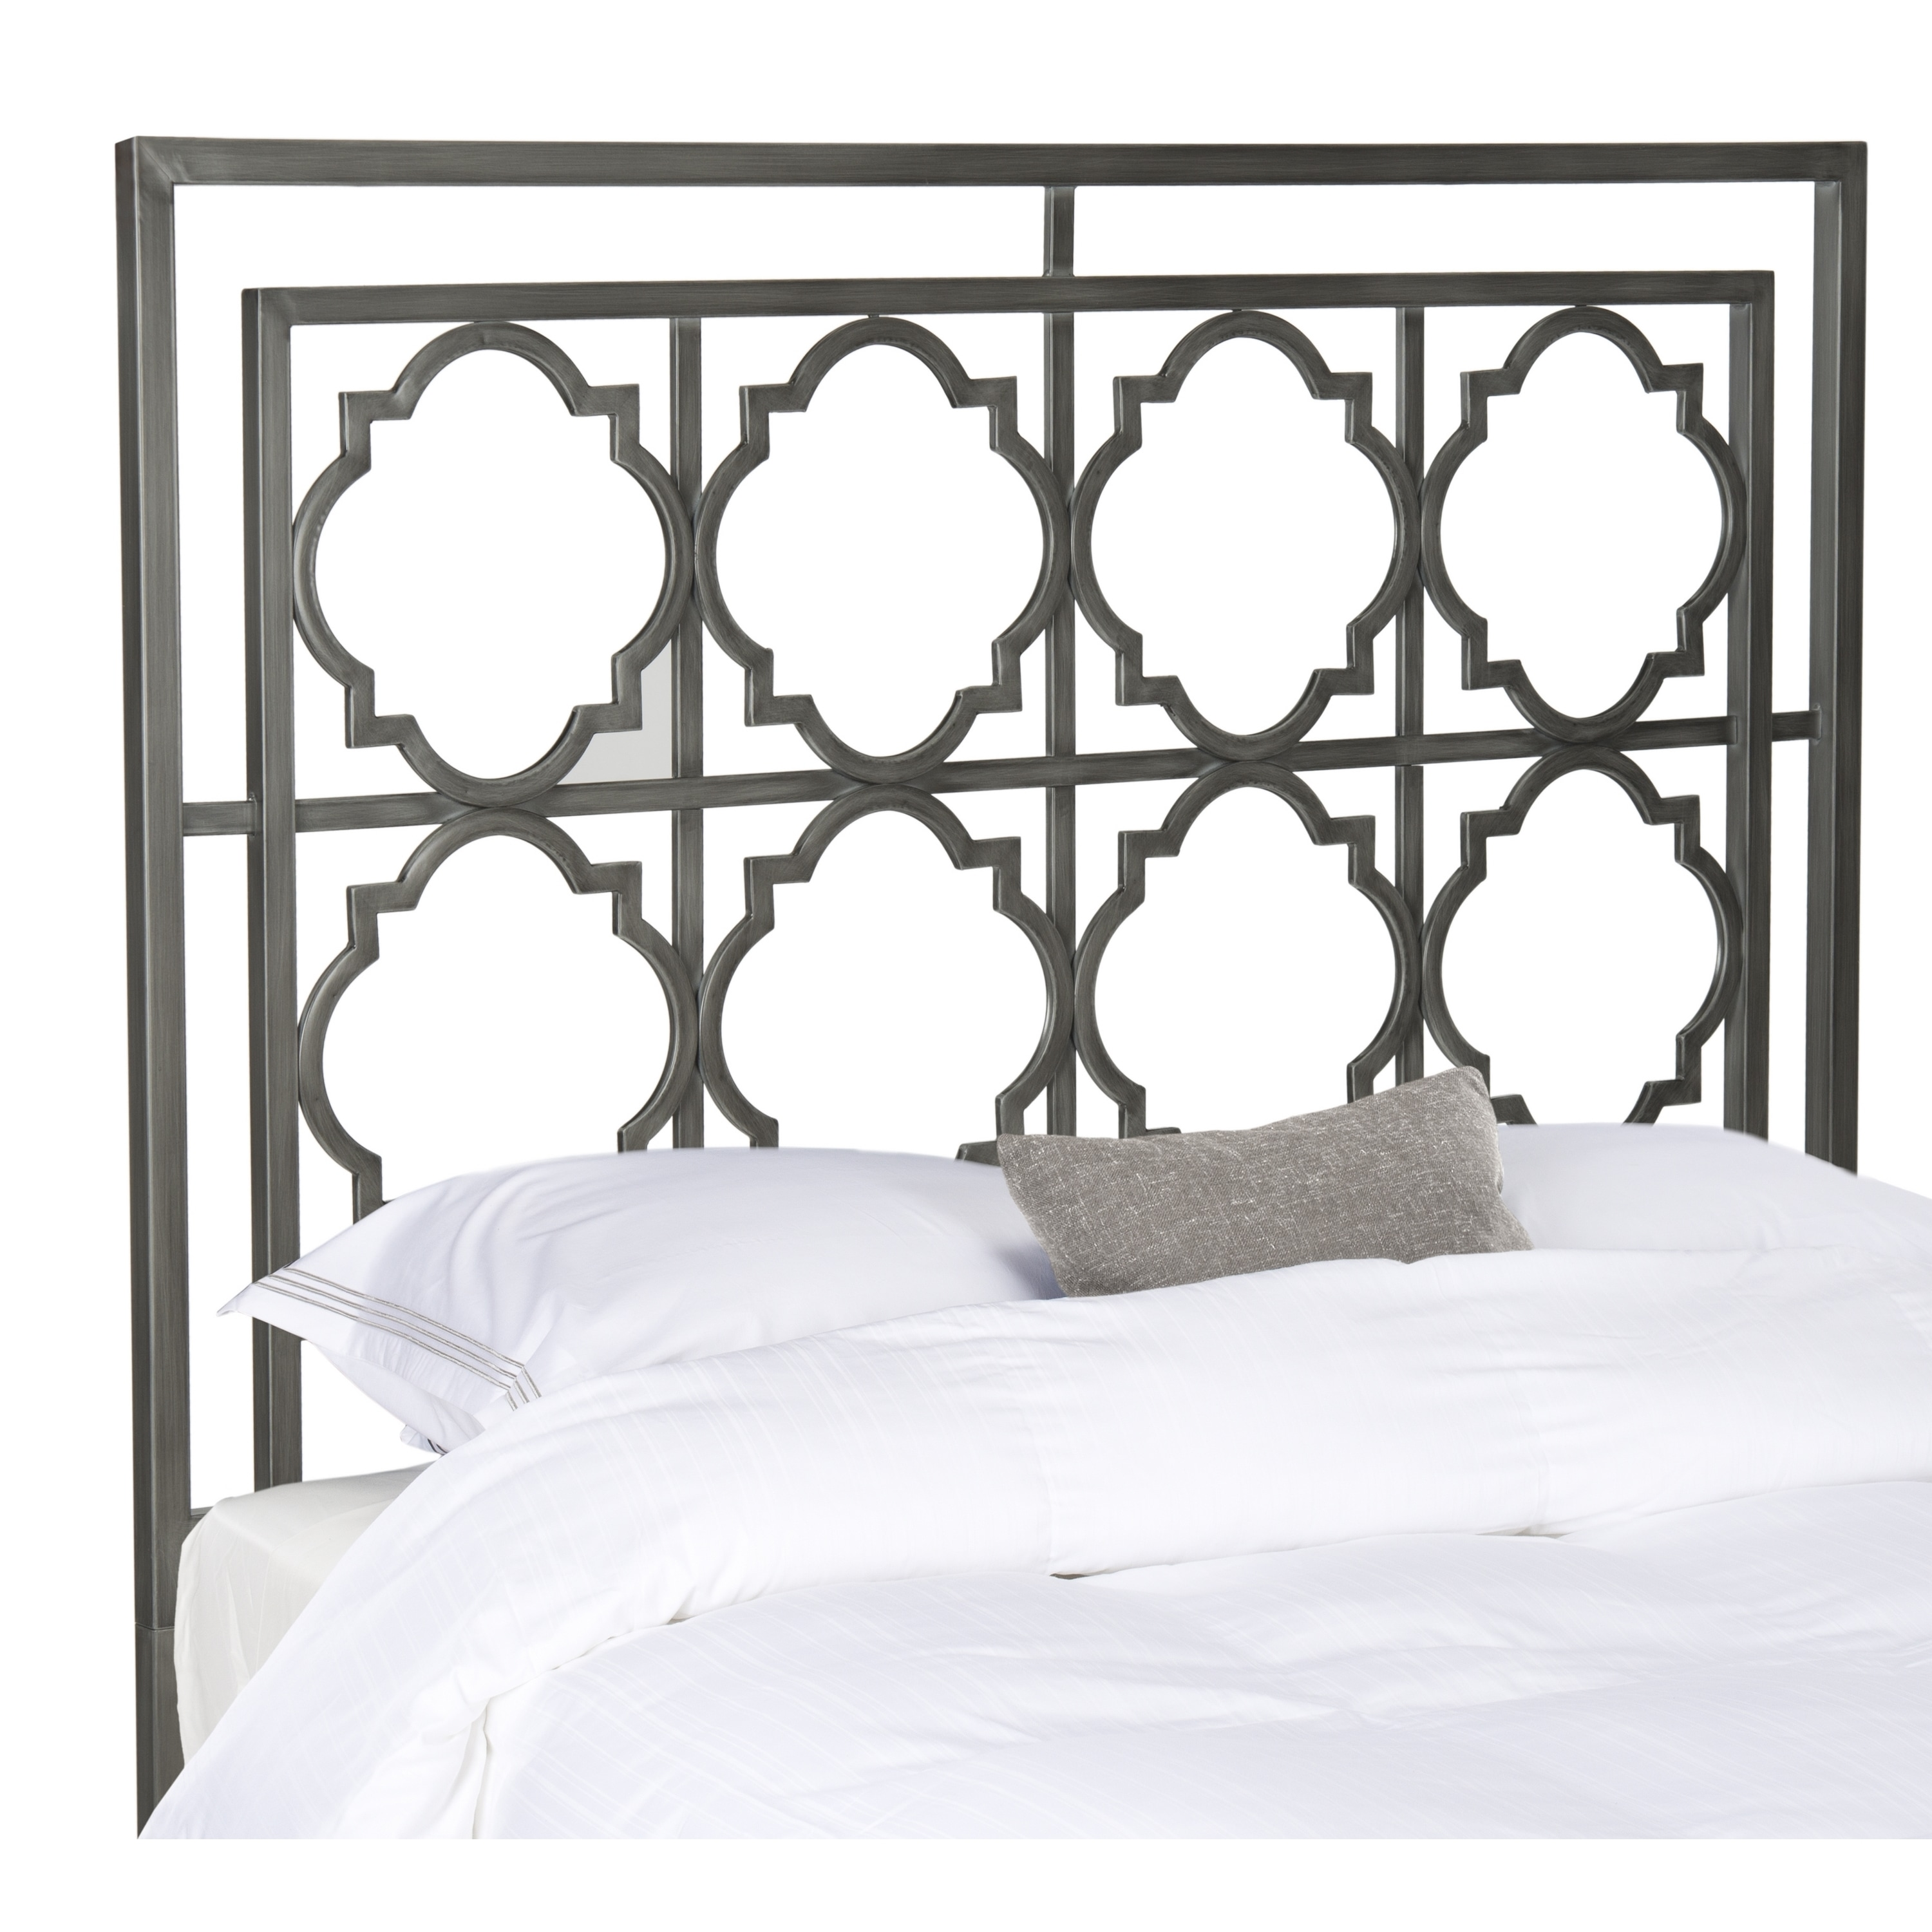 size bed king headboard bookcase tufted metal with sale for short full discount white and leather bedroom minneapolis cheap large headboards panel queen fancy footboard black heads arch upholstered